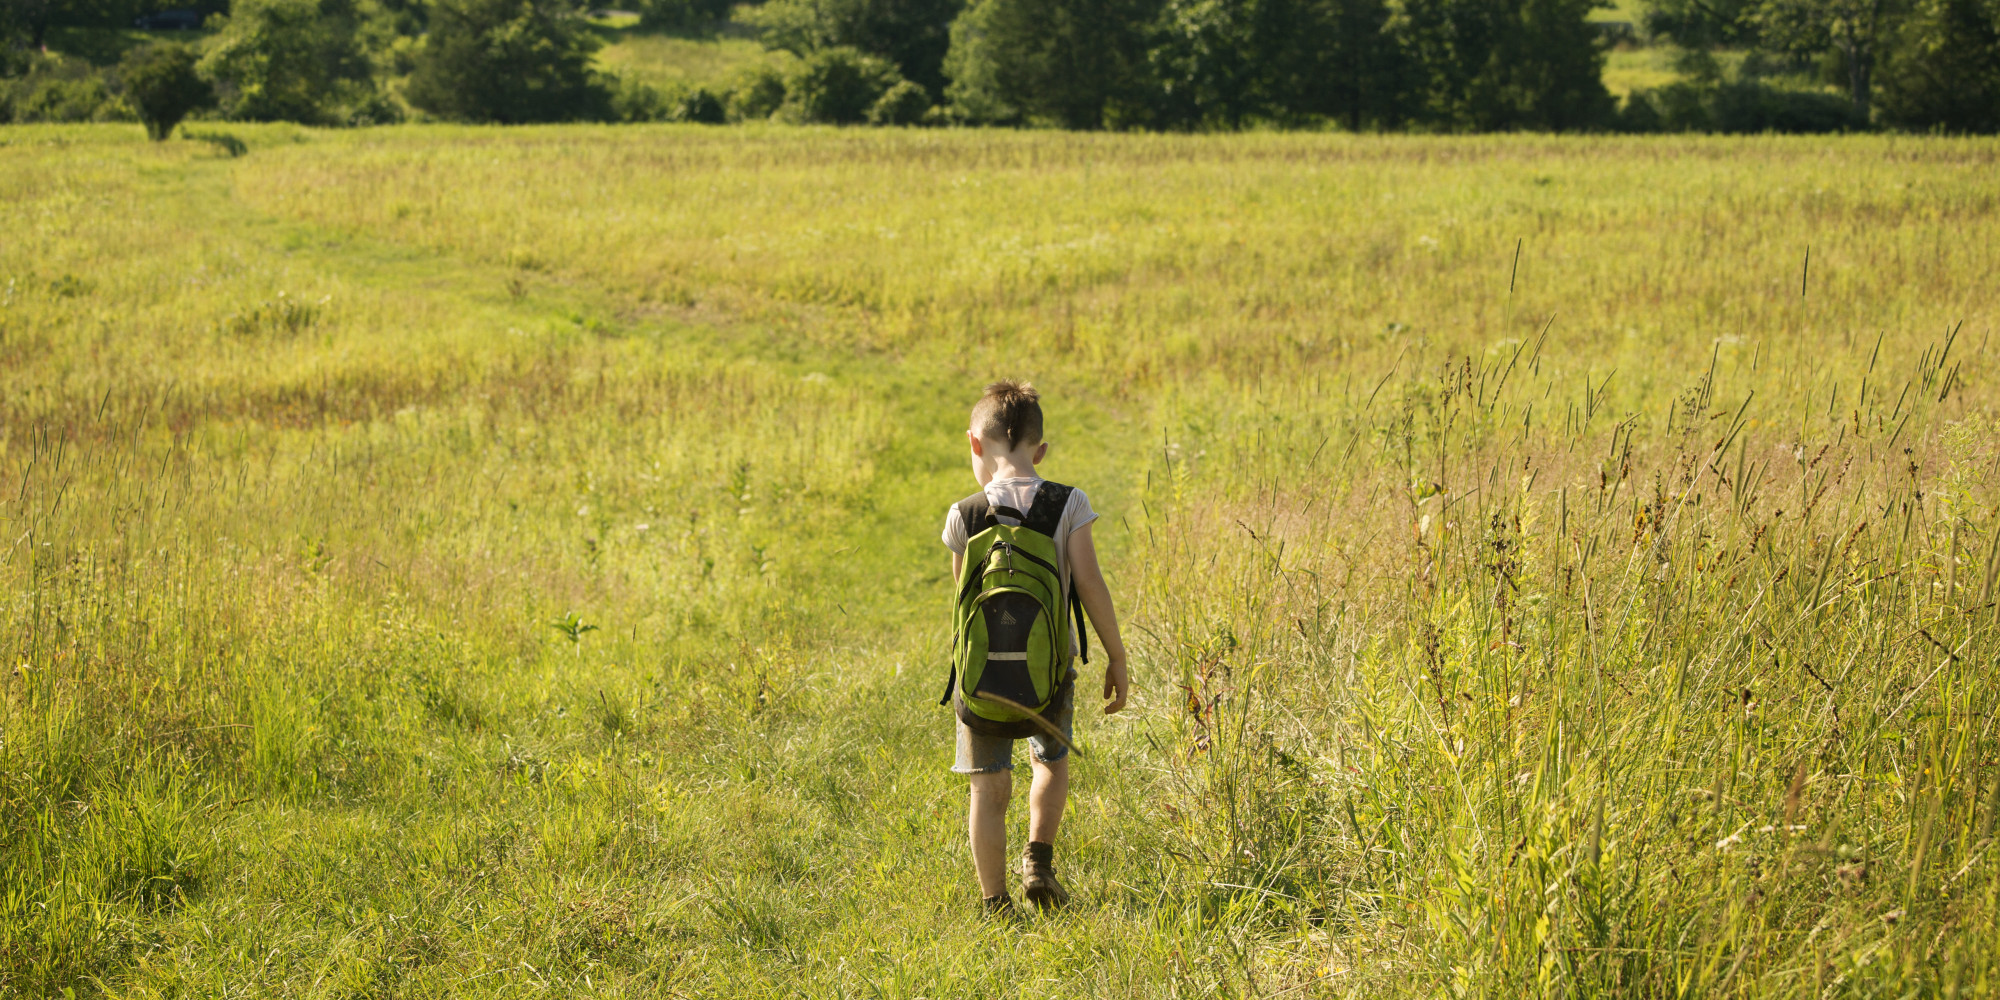 GPS Tracking Devices for Kids with Autism? | HuffPost